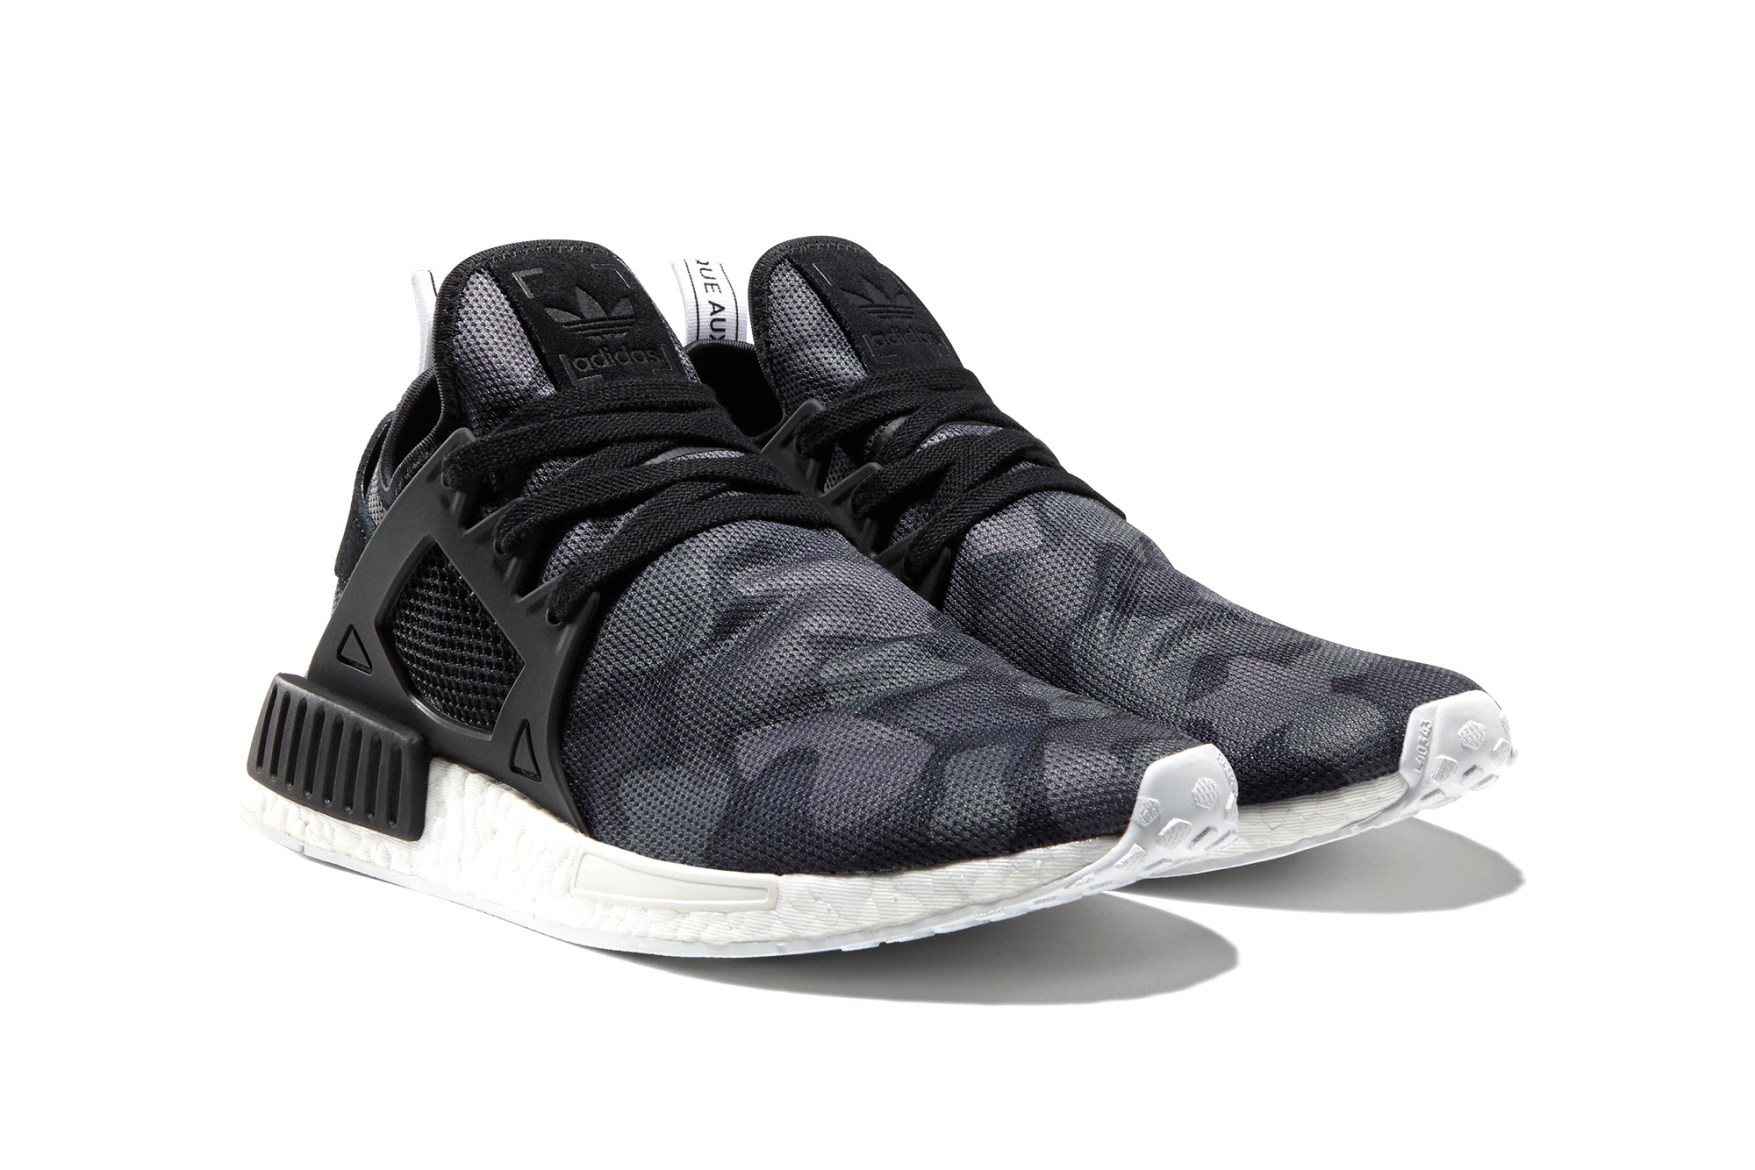 Adidas NMD XR 1 Boost Runner Yeezy PK Sneakers New Black Glitch